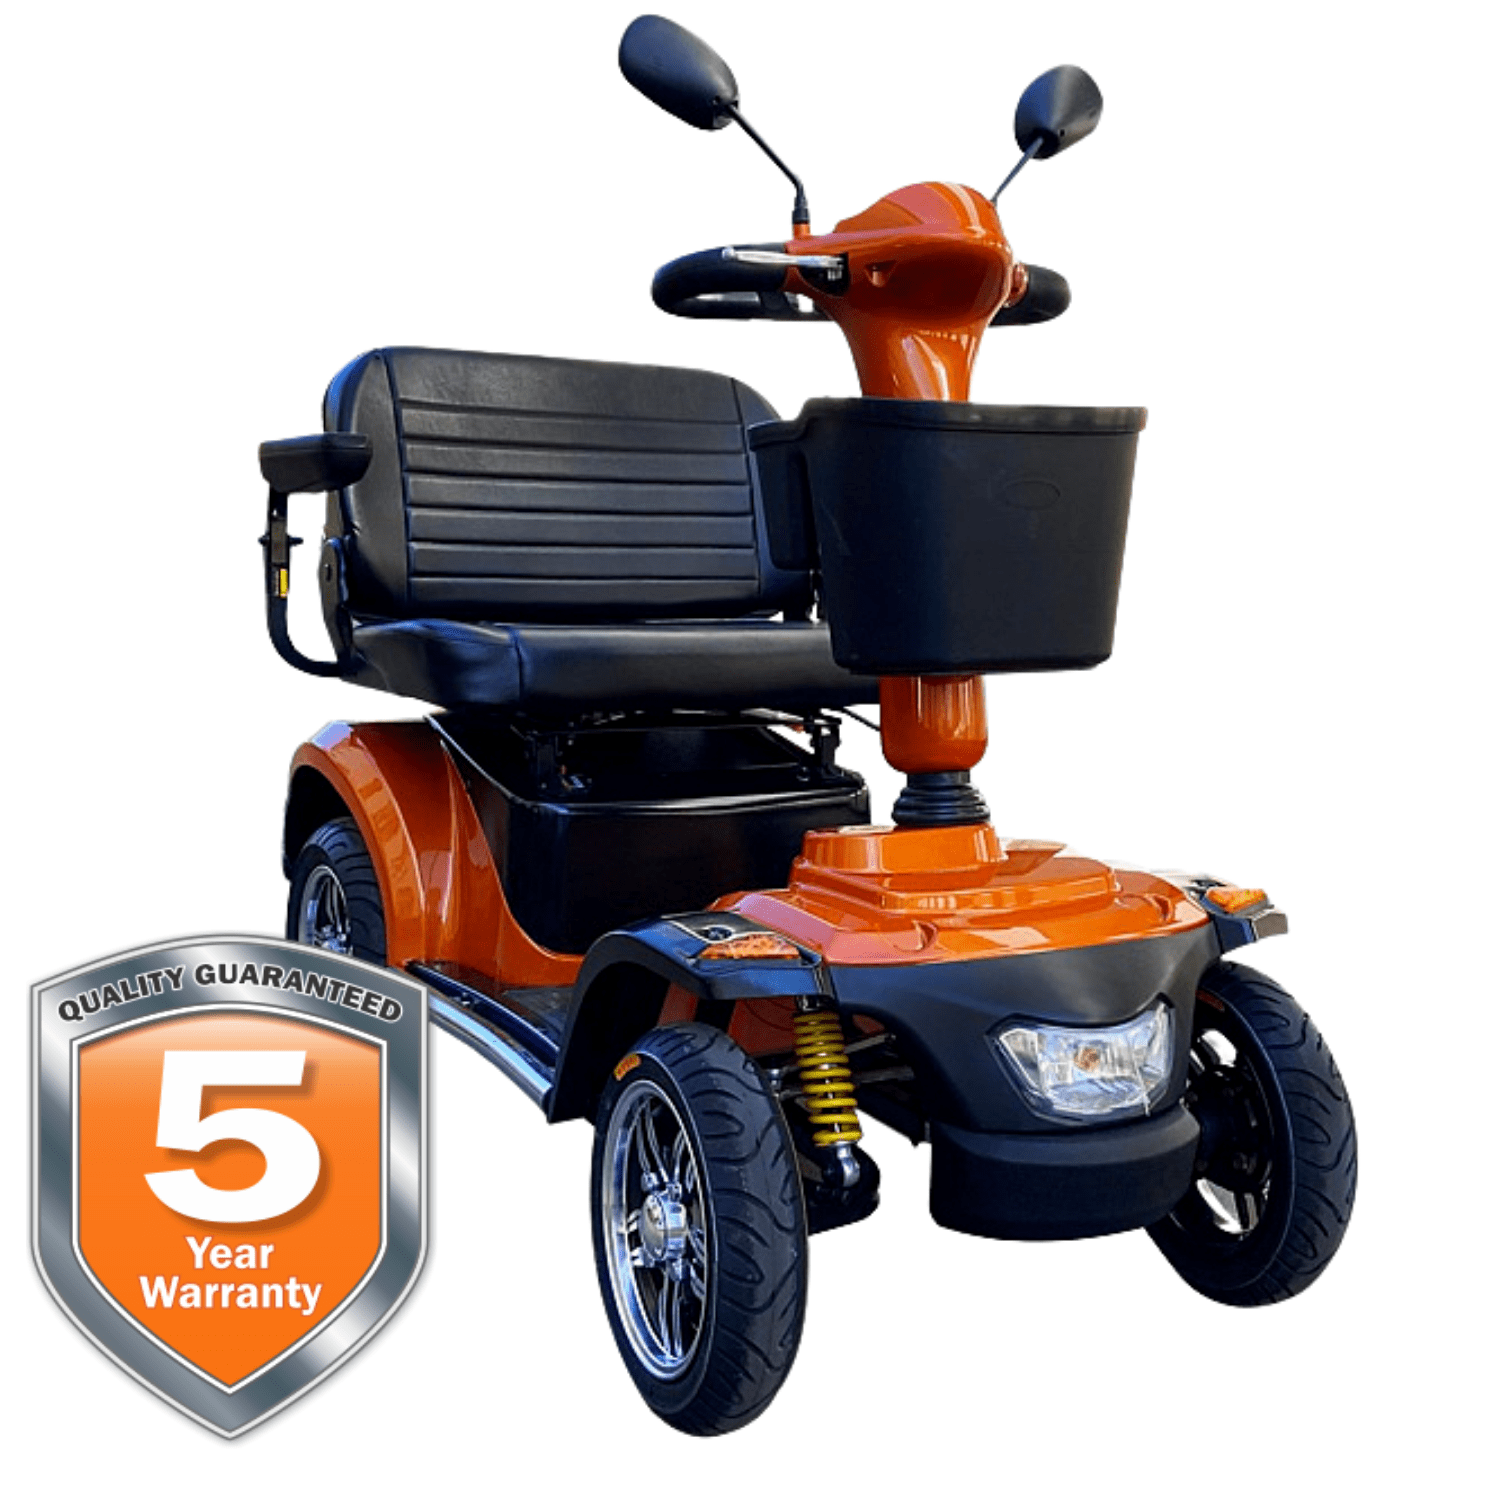 Top Gun Emperor Mobility Scooter – Product Image